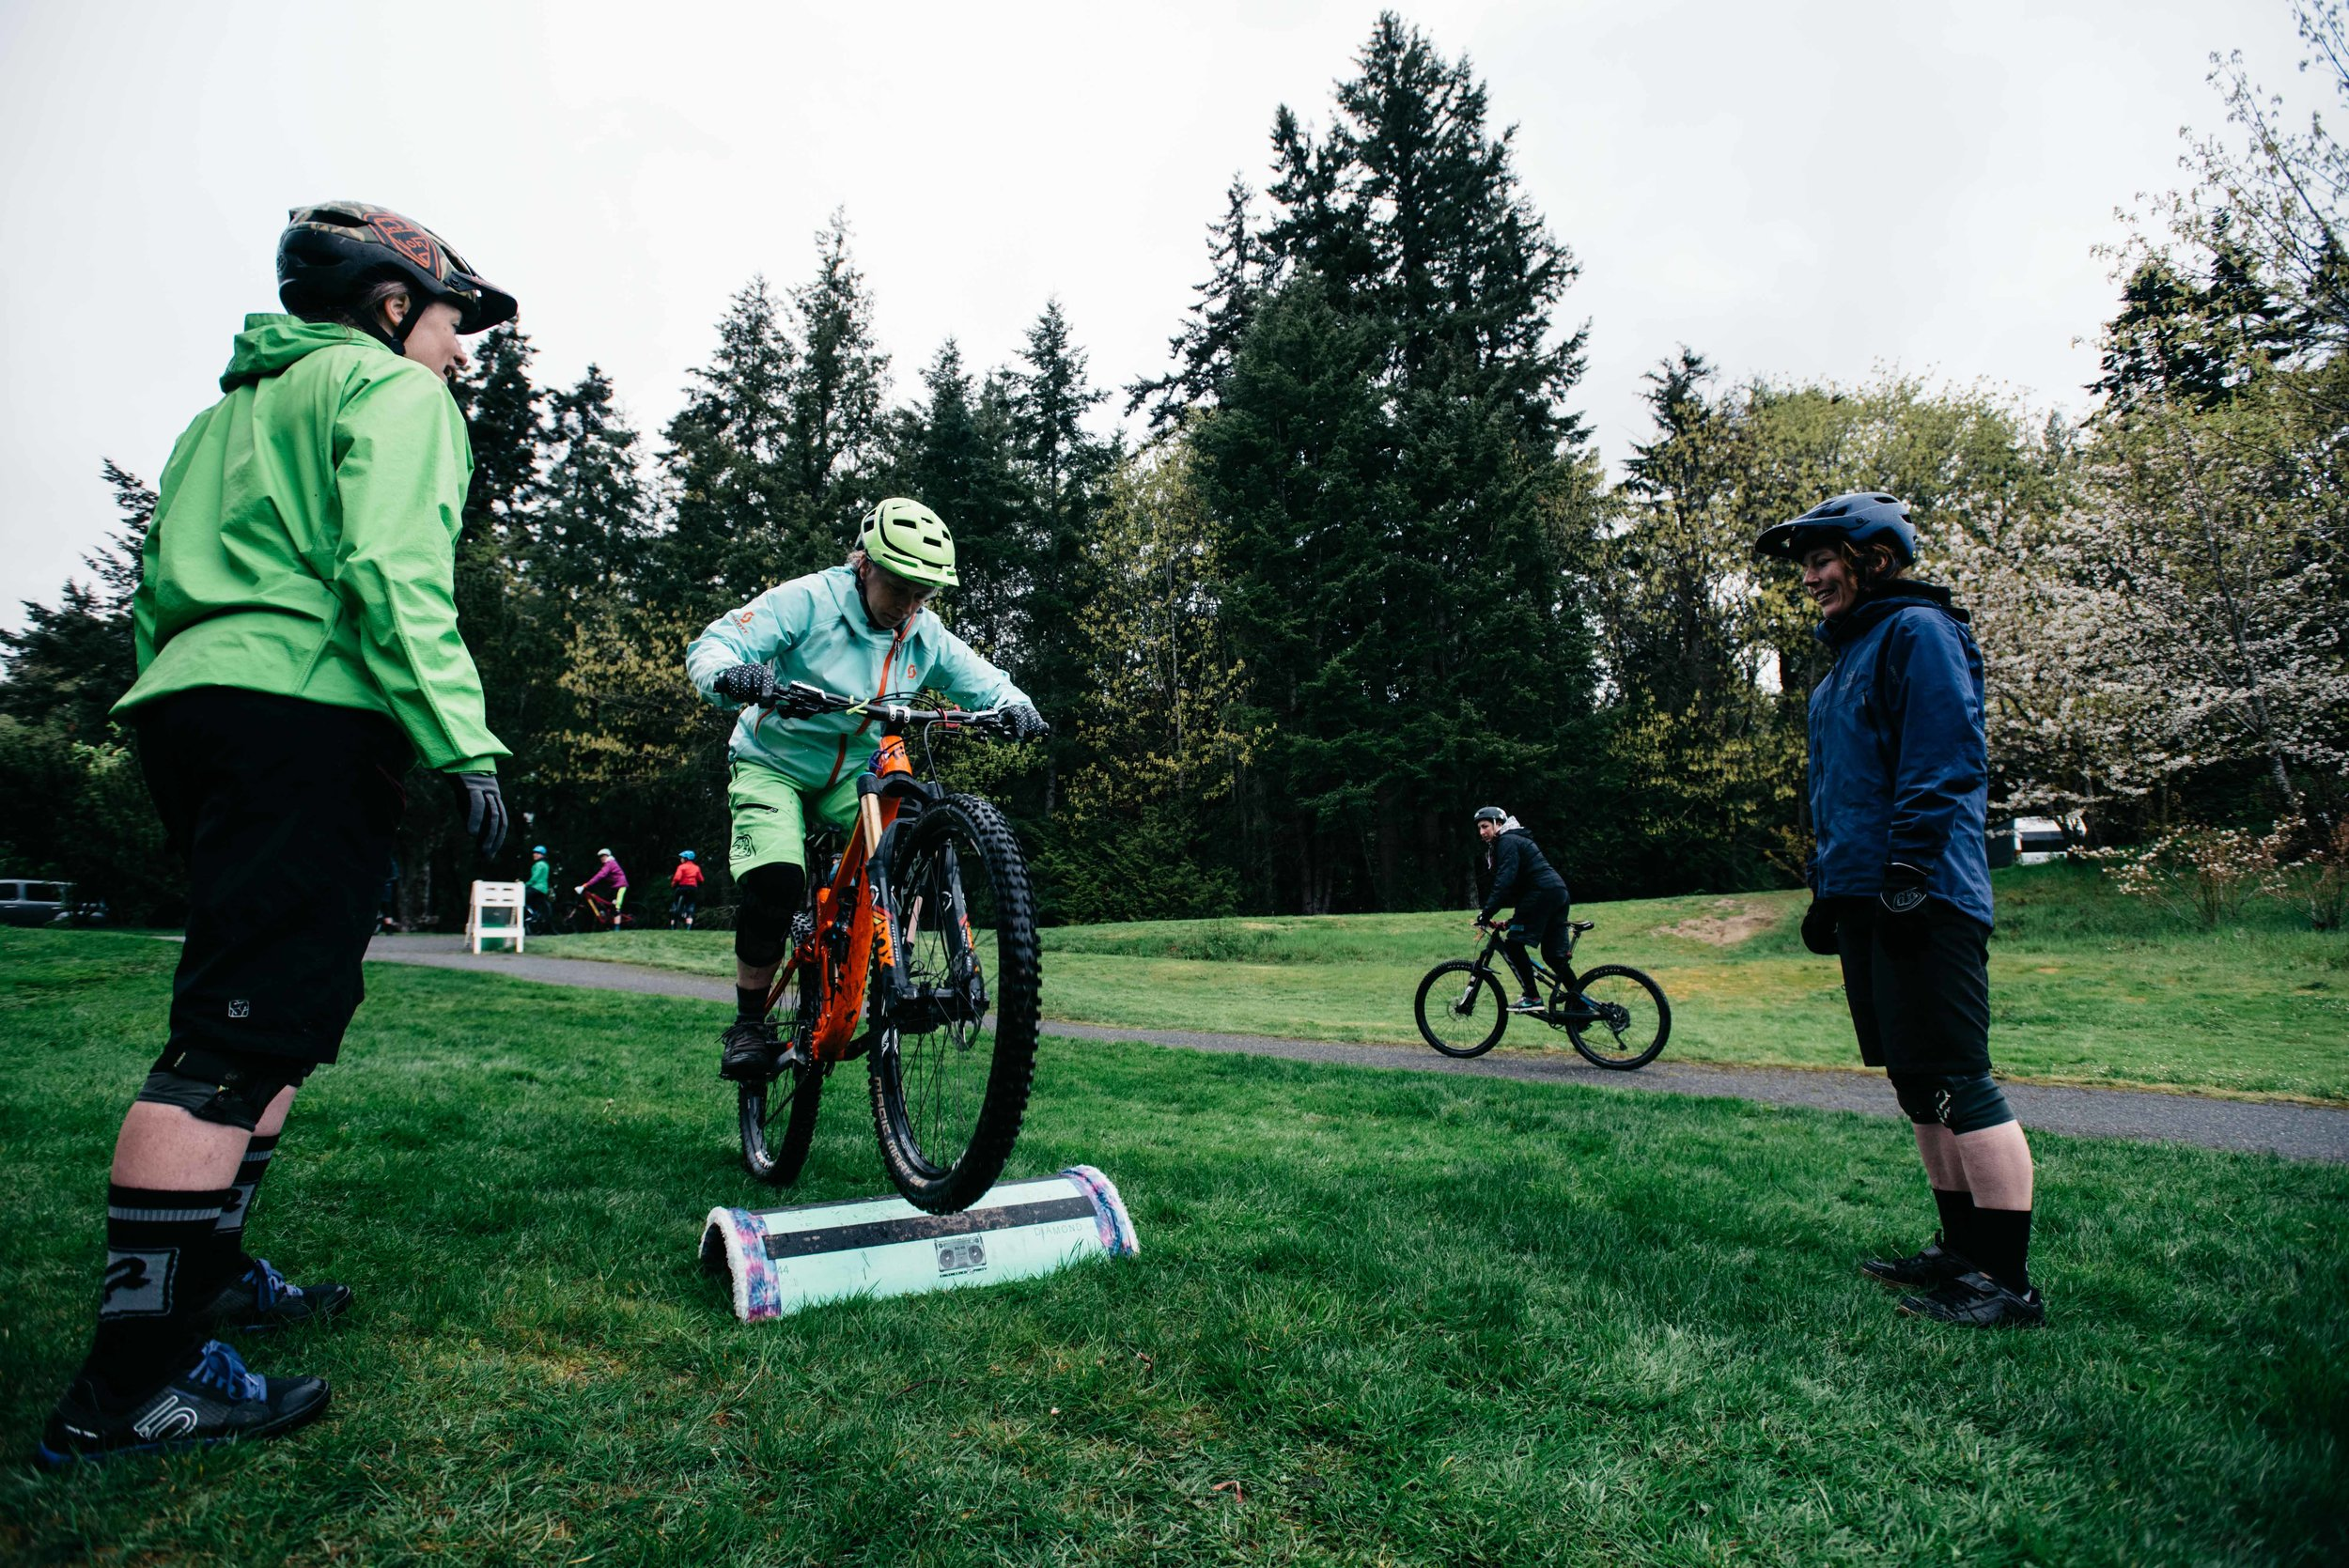 Step-by-intentional-step we deepen your understanding of what it takes to confidently ride your mountain bike